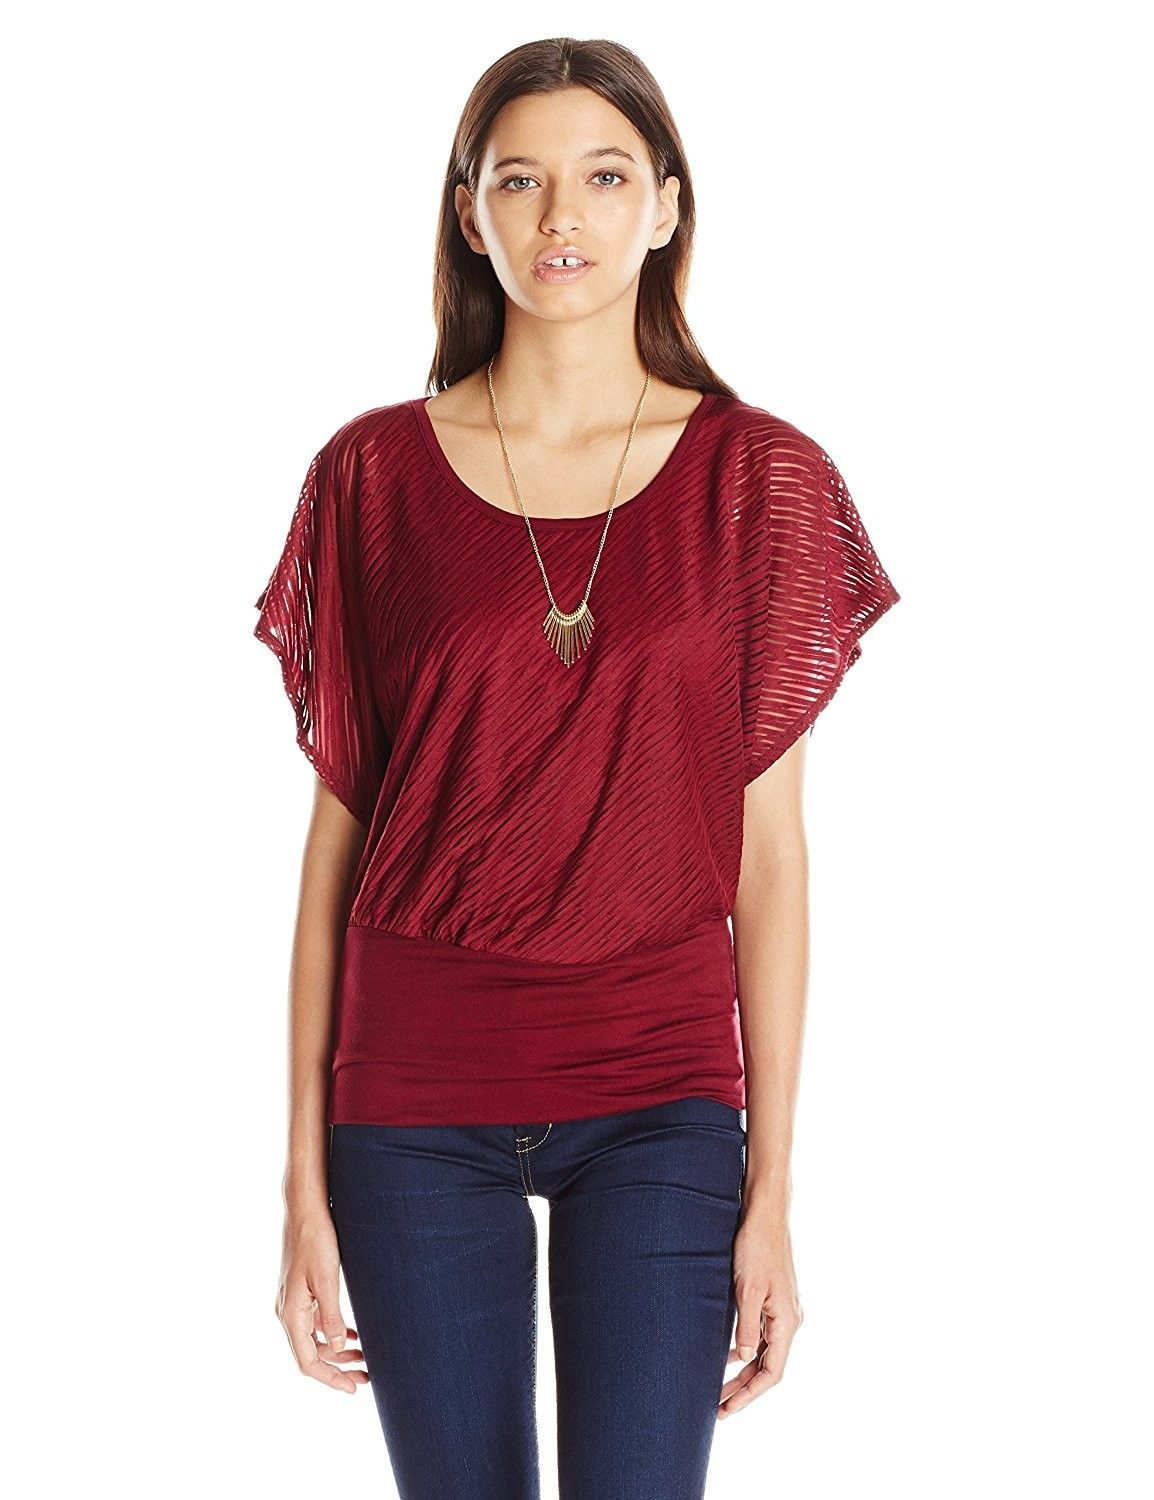 Banded bottom top womens